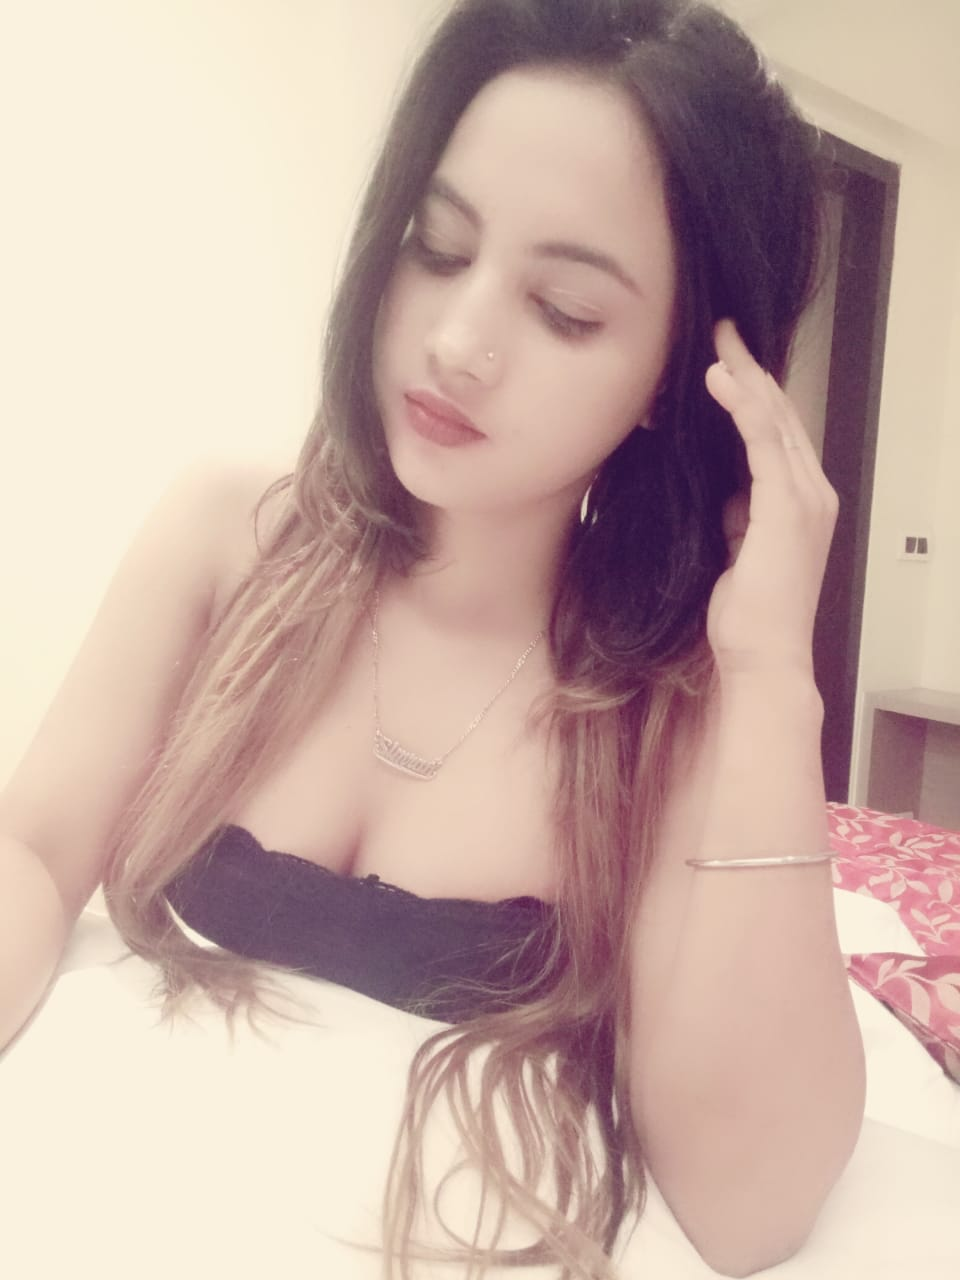 chira-bazaar Housewife Escorts In